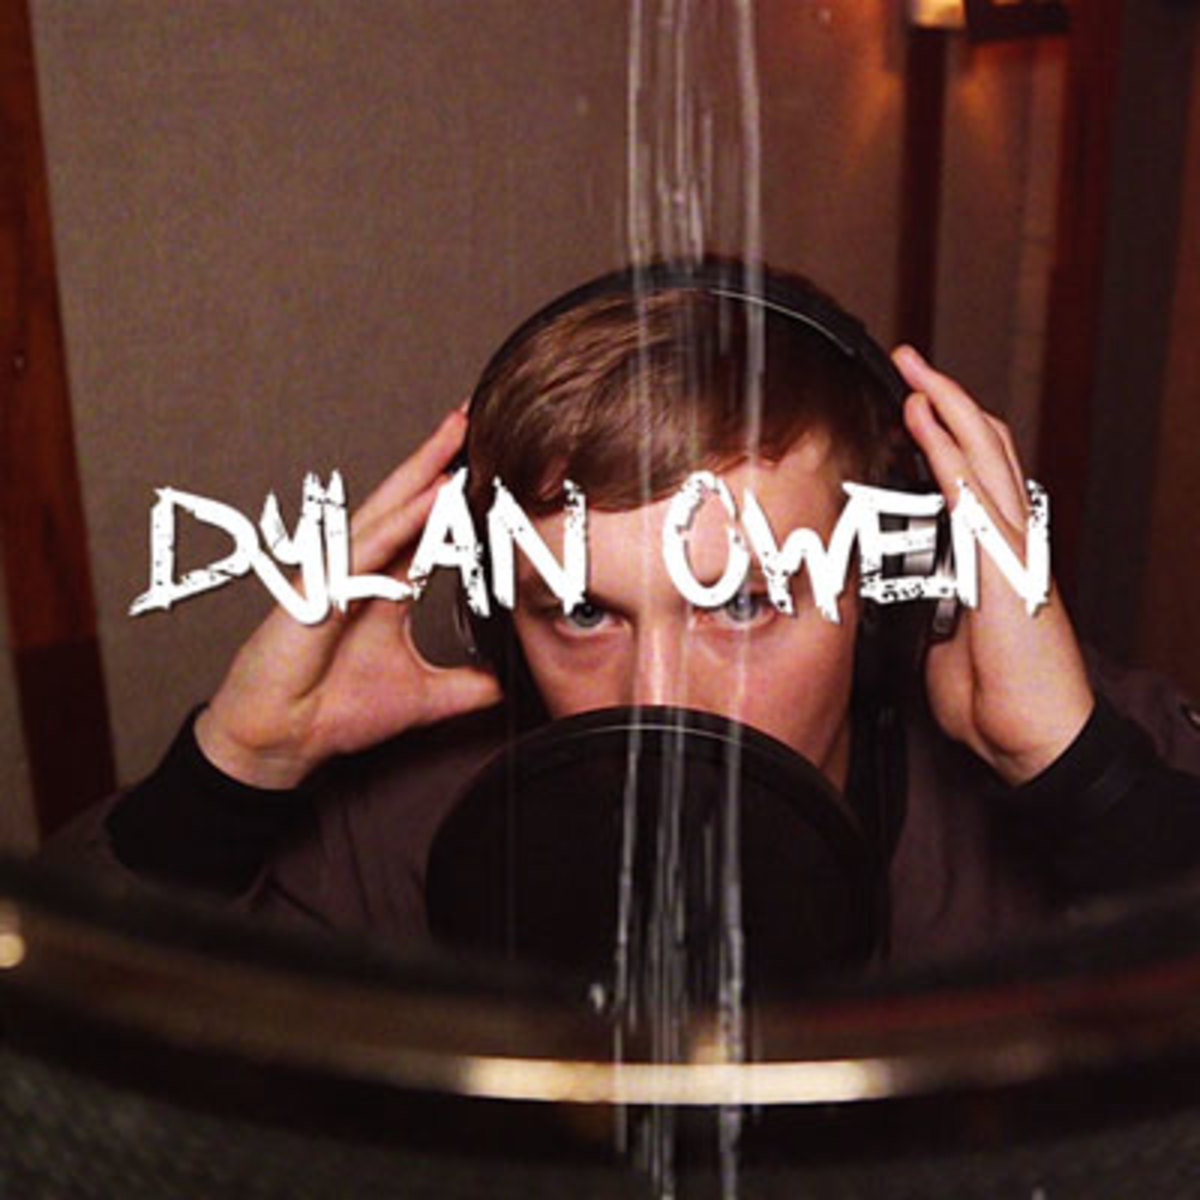 dylan-owen-btb-feature.jpg